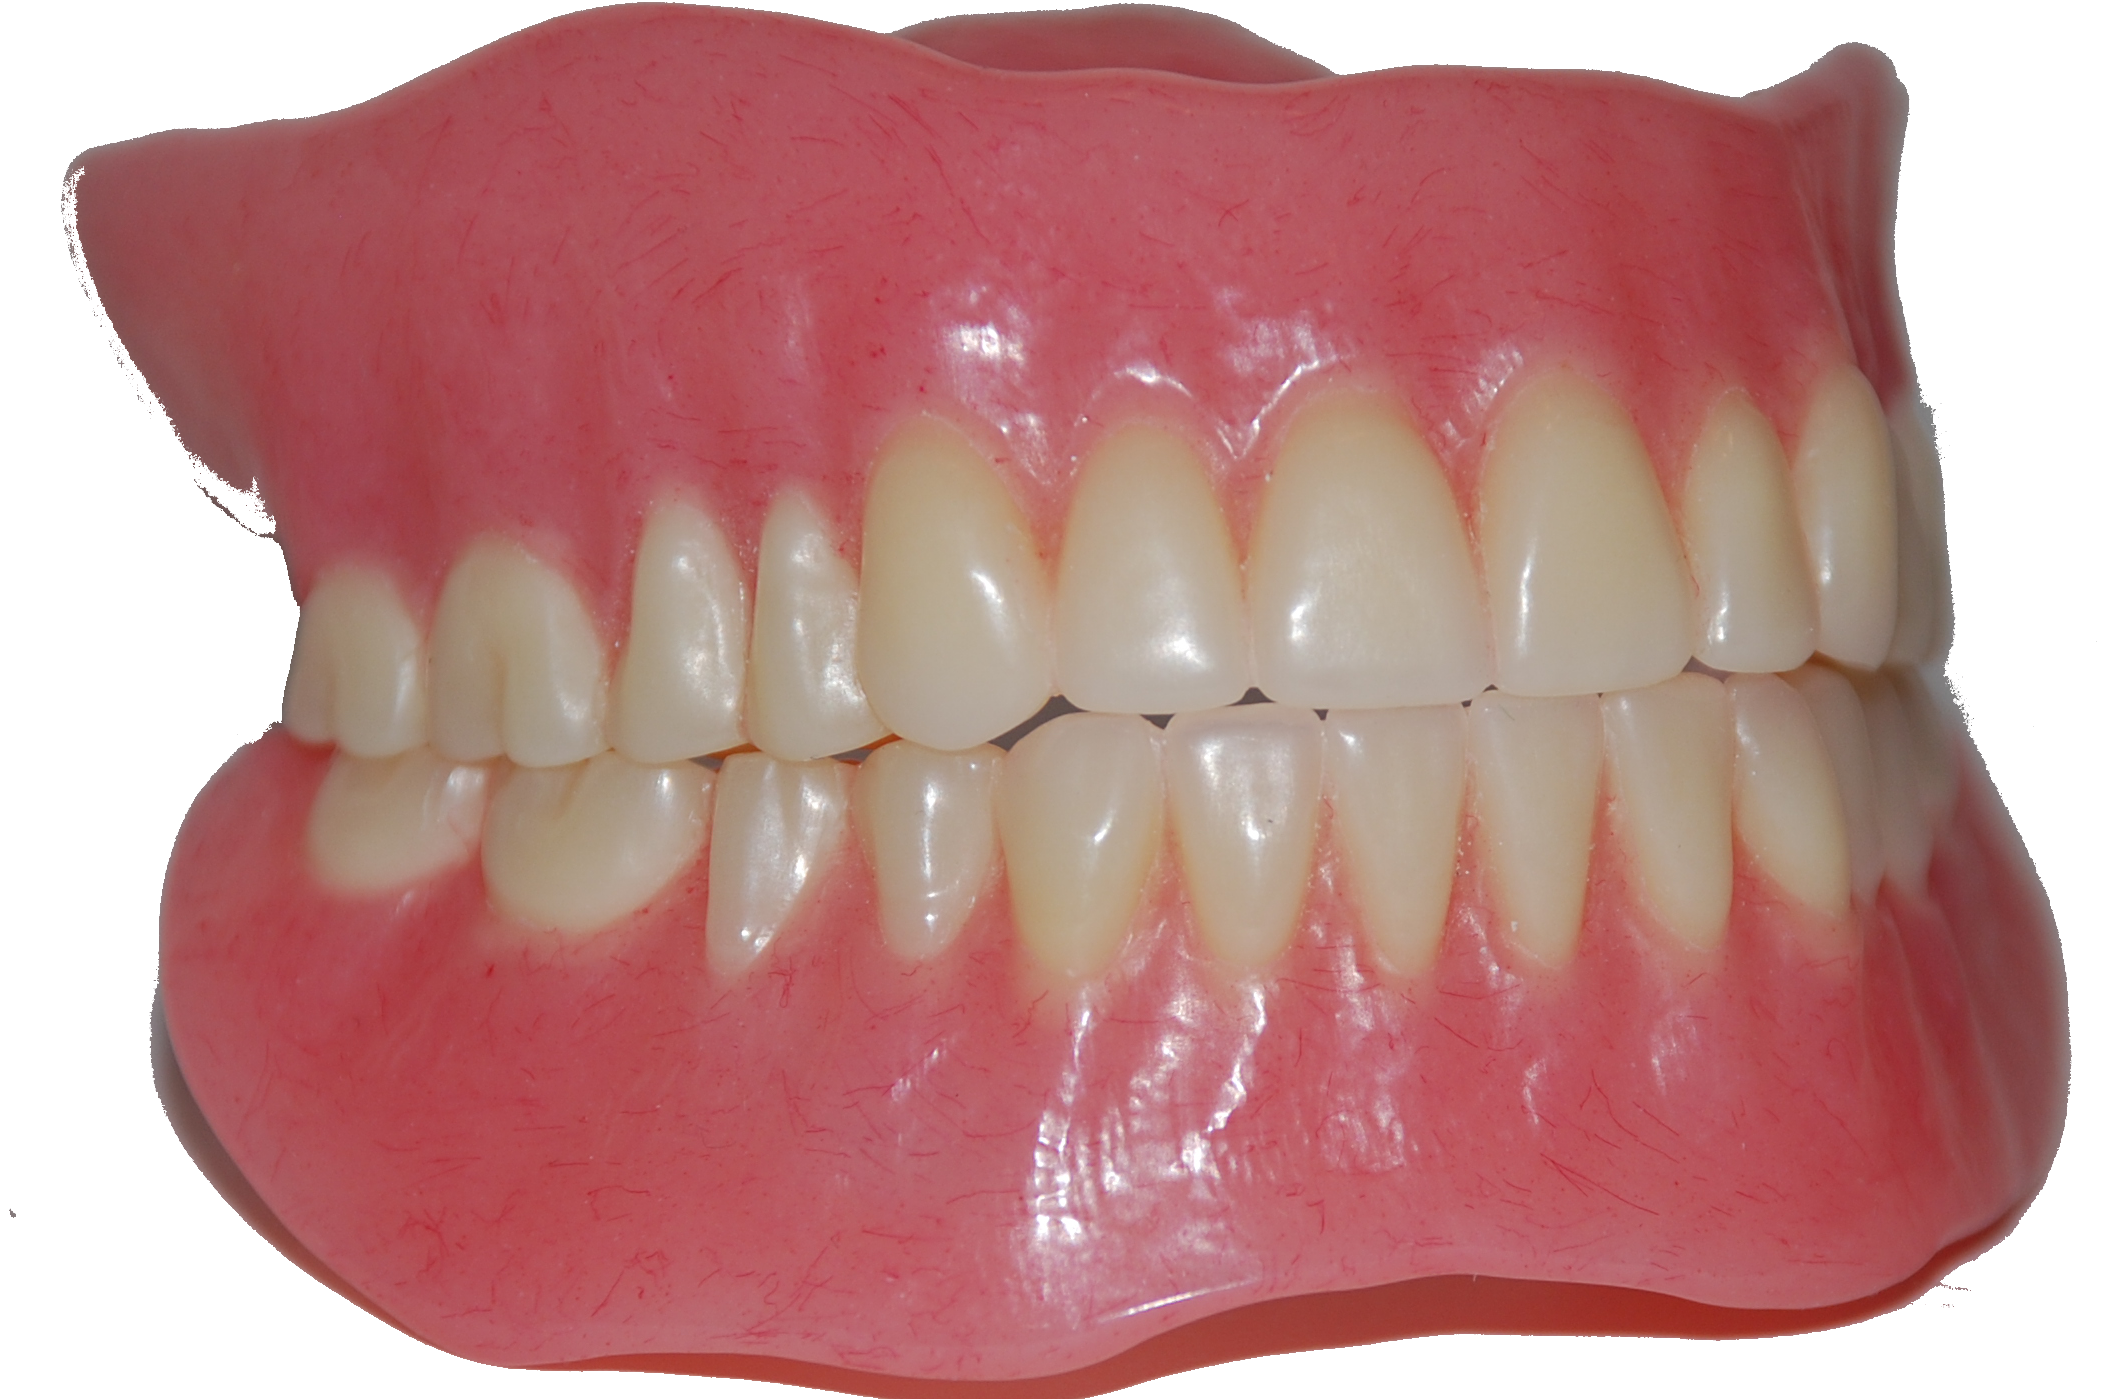 Free Download Teeth Png Images image #46549